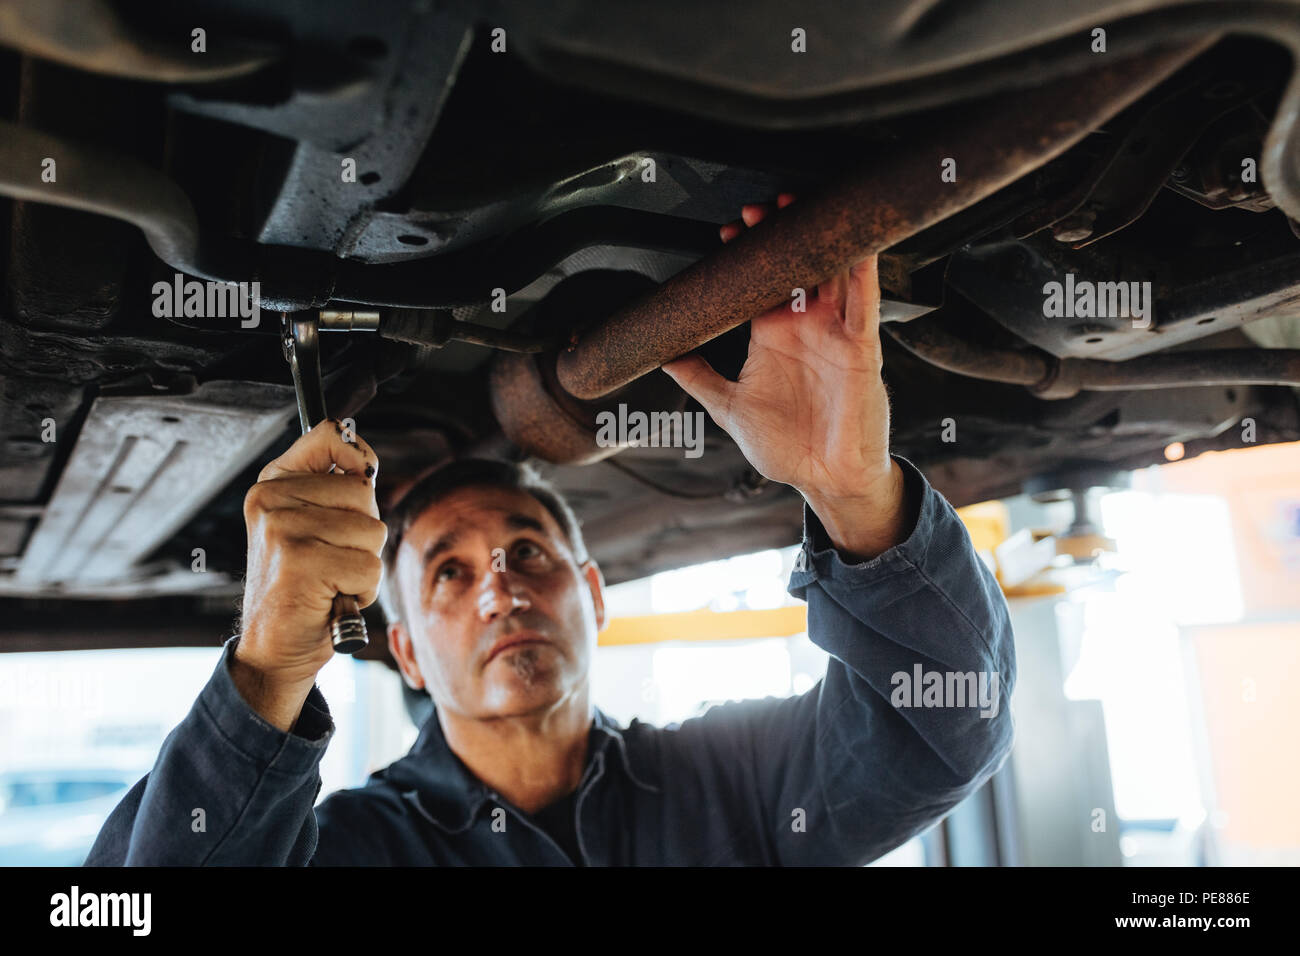 Man tightening a silencer pipe with wrench spanner in auto garage. Mechanic working under a lifted car in repair shop. - Stock Image